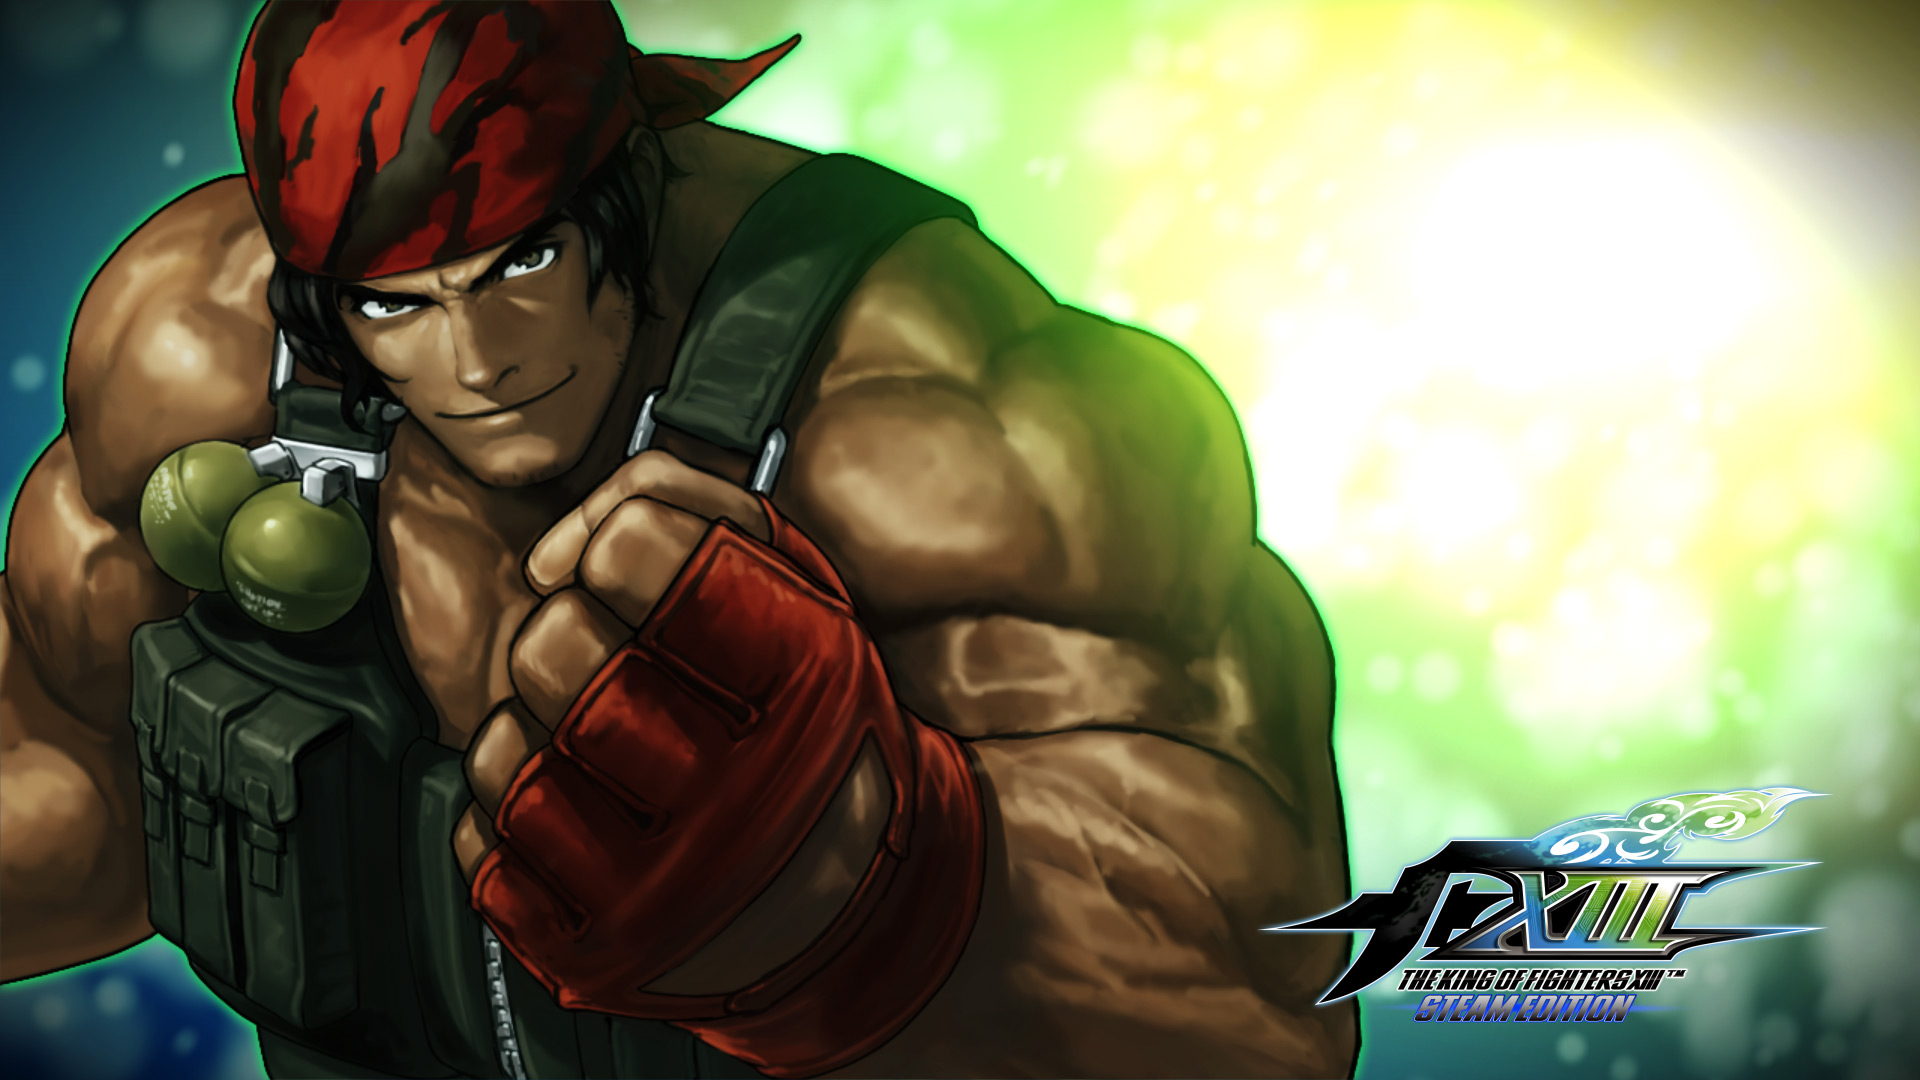 King Of Fighters Hd Wallpapers Ralf The King Of Fighters